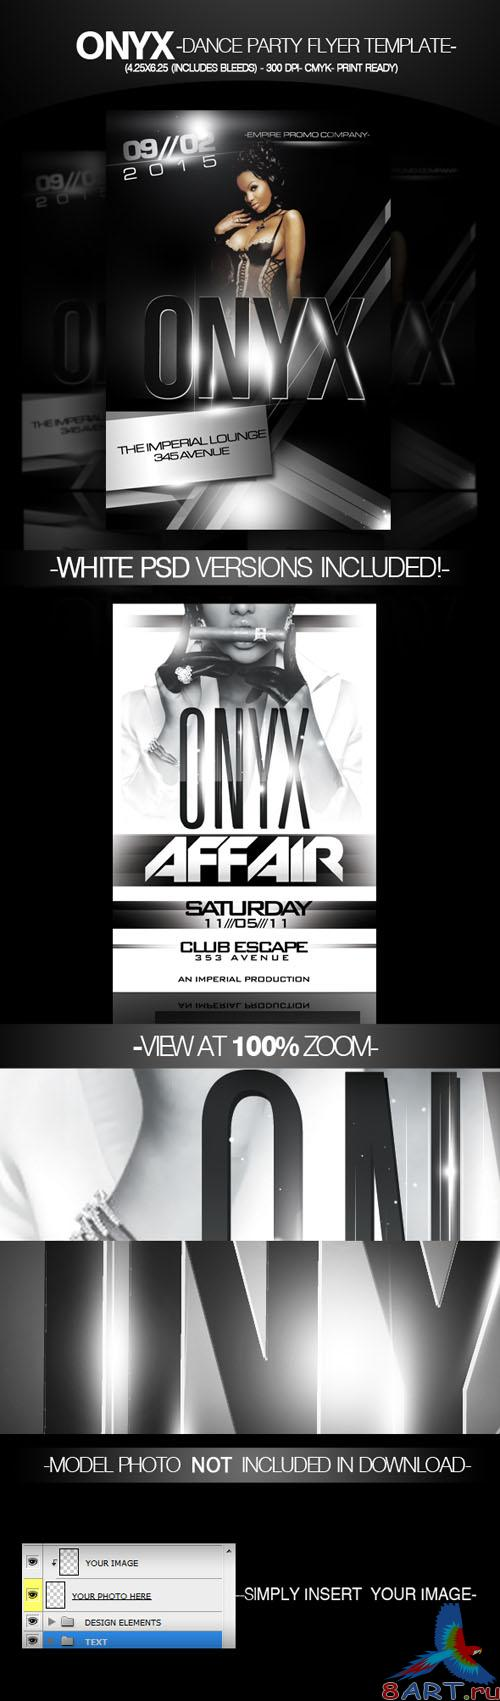 PSD Template - Onyx Party Flyer/Poster